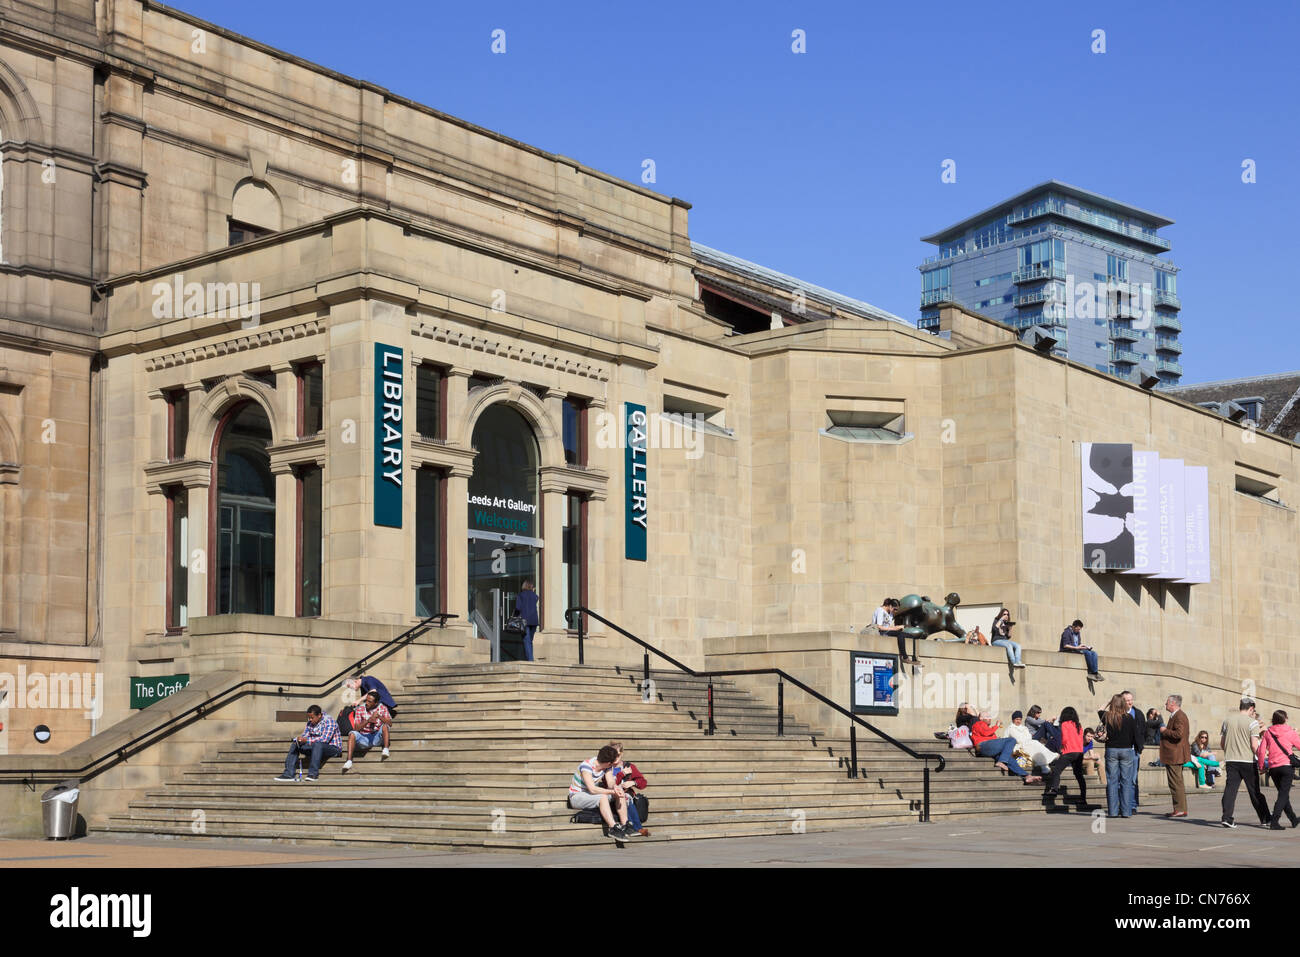 Scene with people on steps outside city public Central Library and Art Gallery in The Headrow Leeds West Yorkshire - Stock Image